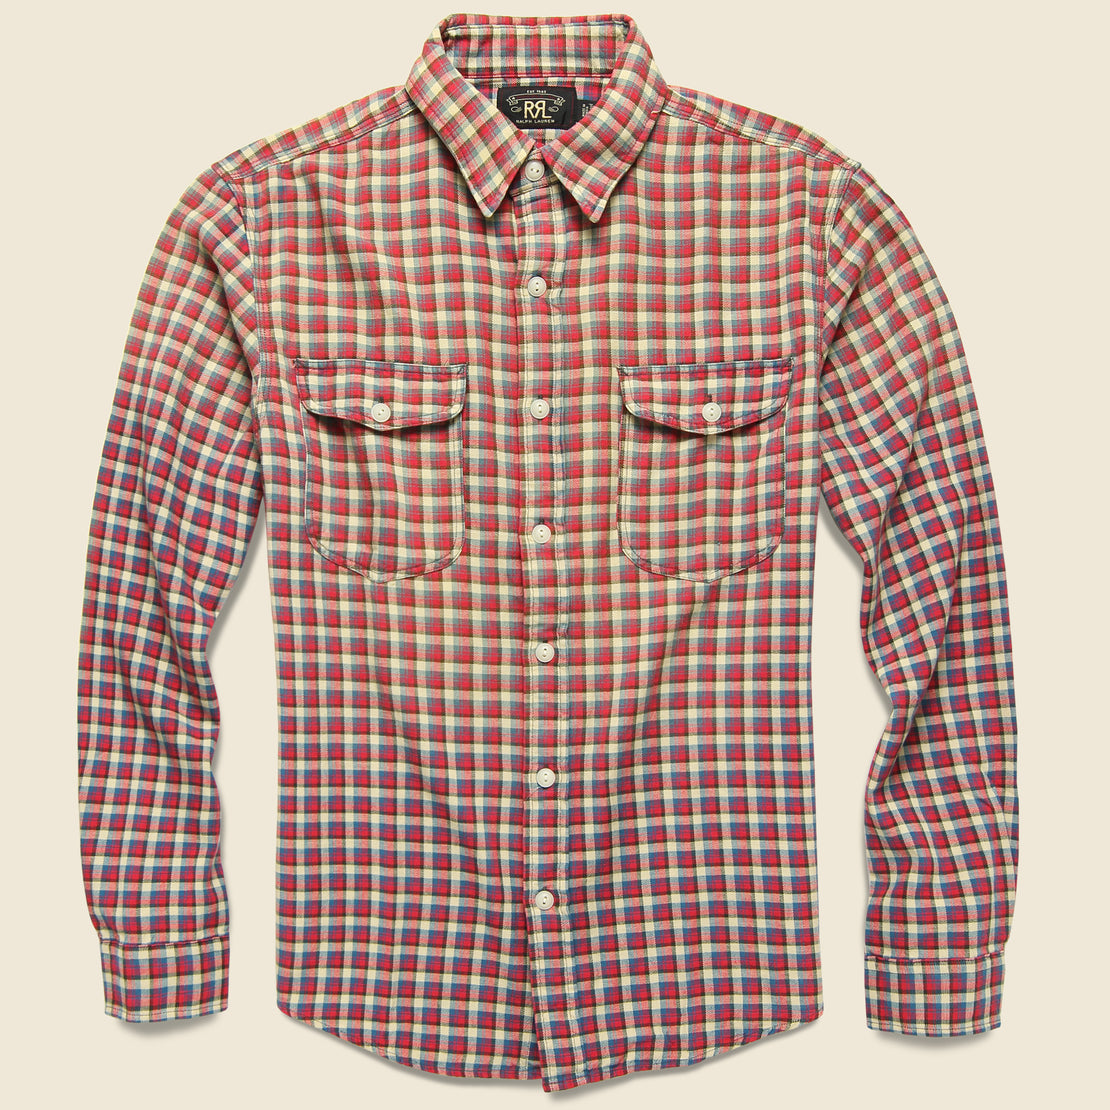 RRL Lee Workshirt - Red/Blue Plaid